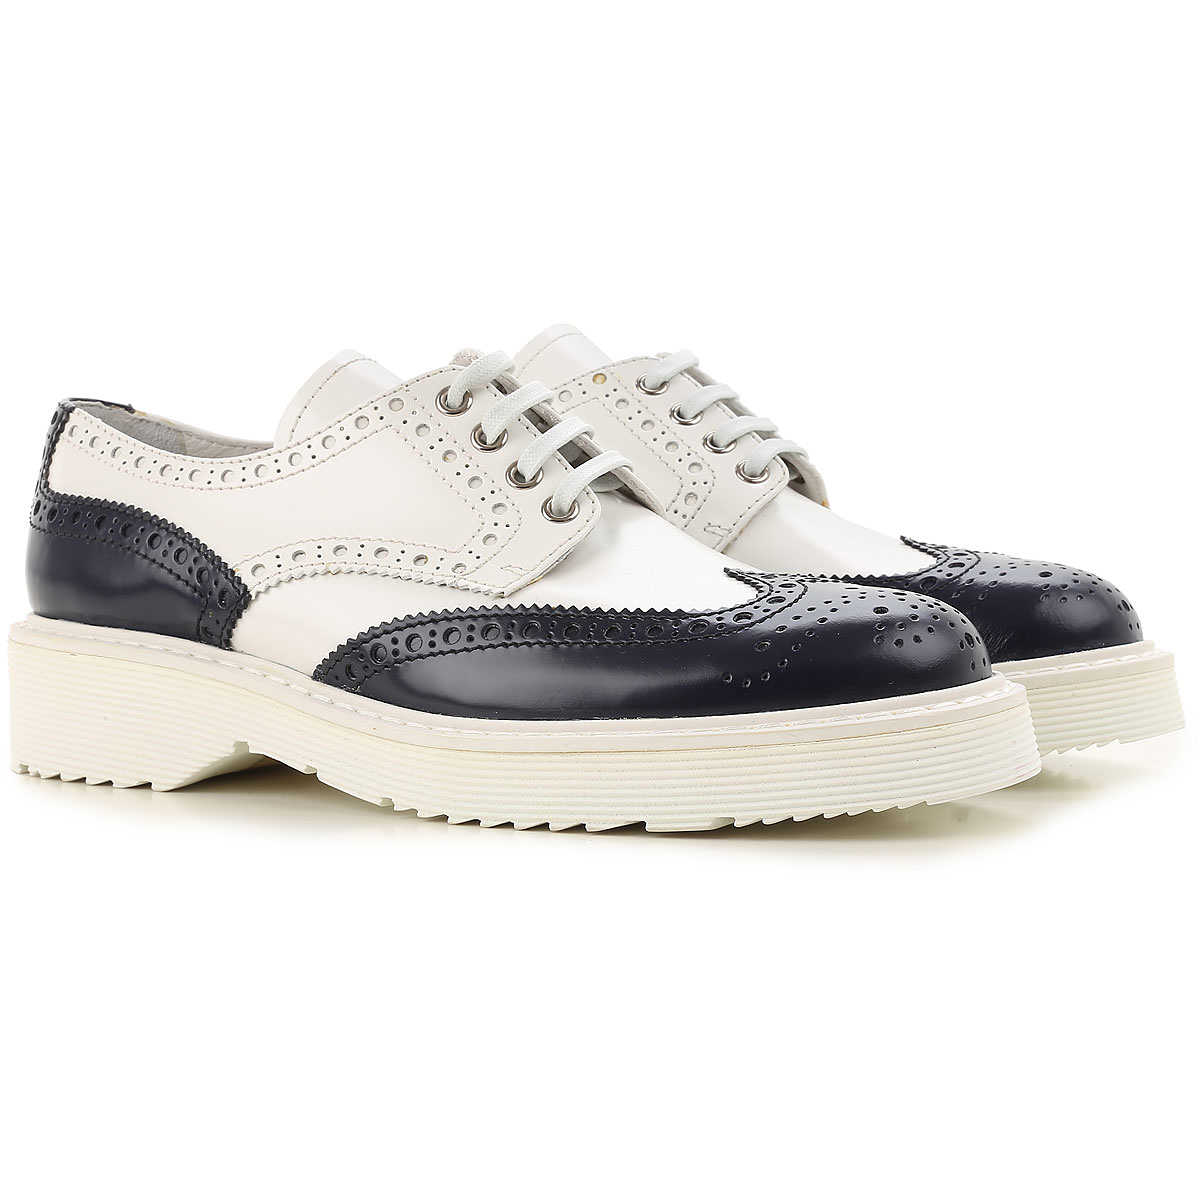 Prada Brogues Oxford Shoes On Sale in Outlet Baltic Blue UK - GOOFASH